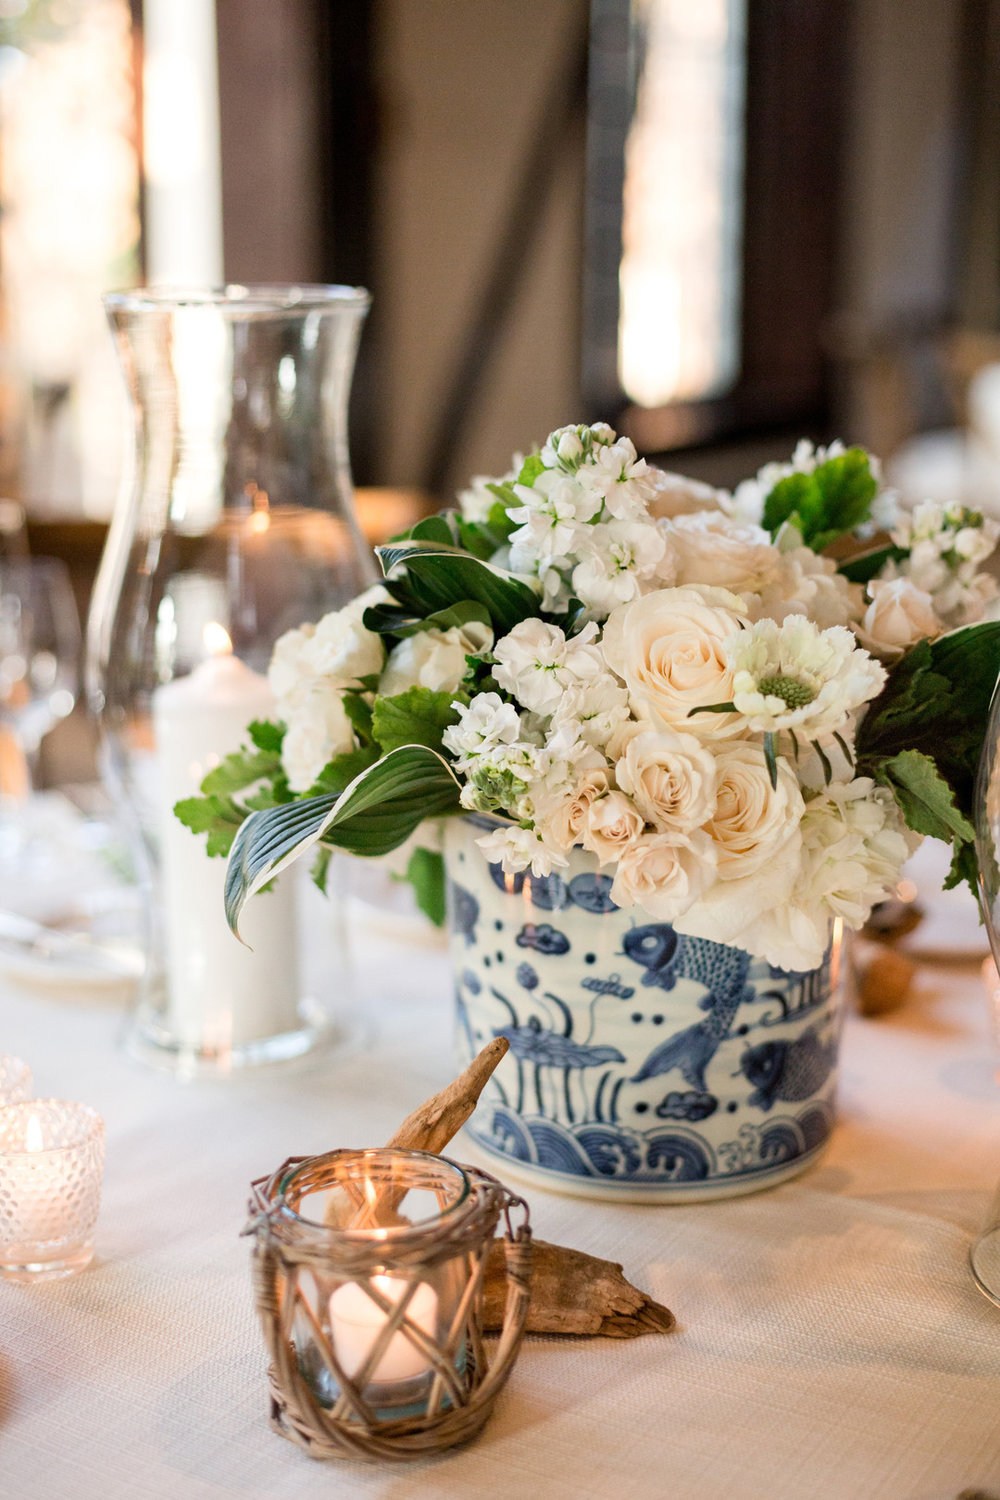 Blue and White Floral Table Center Pieces Chicago Wedding Julia Franzosa Photography